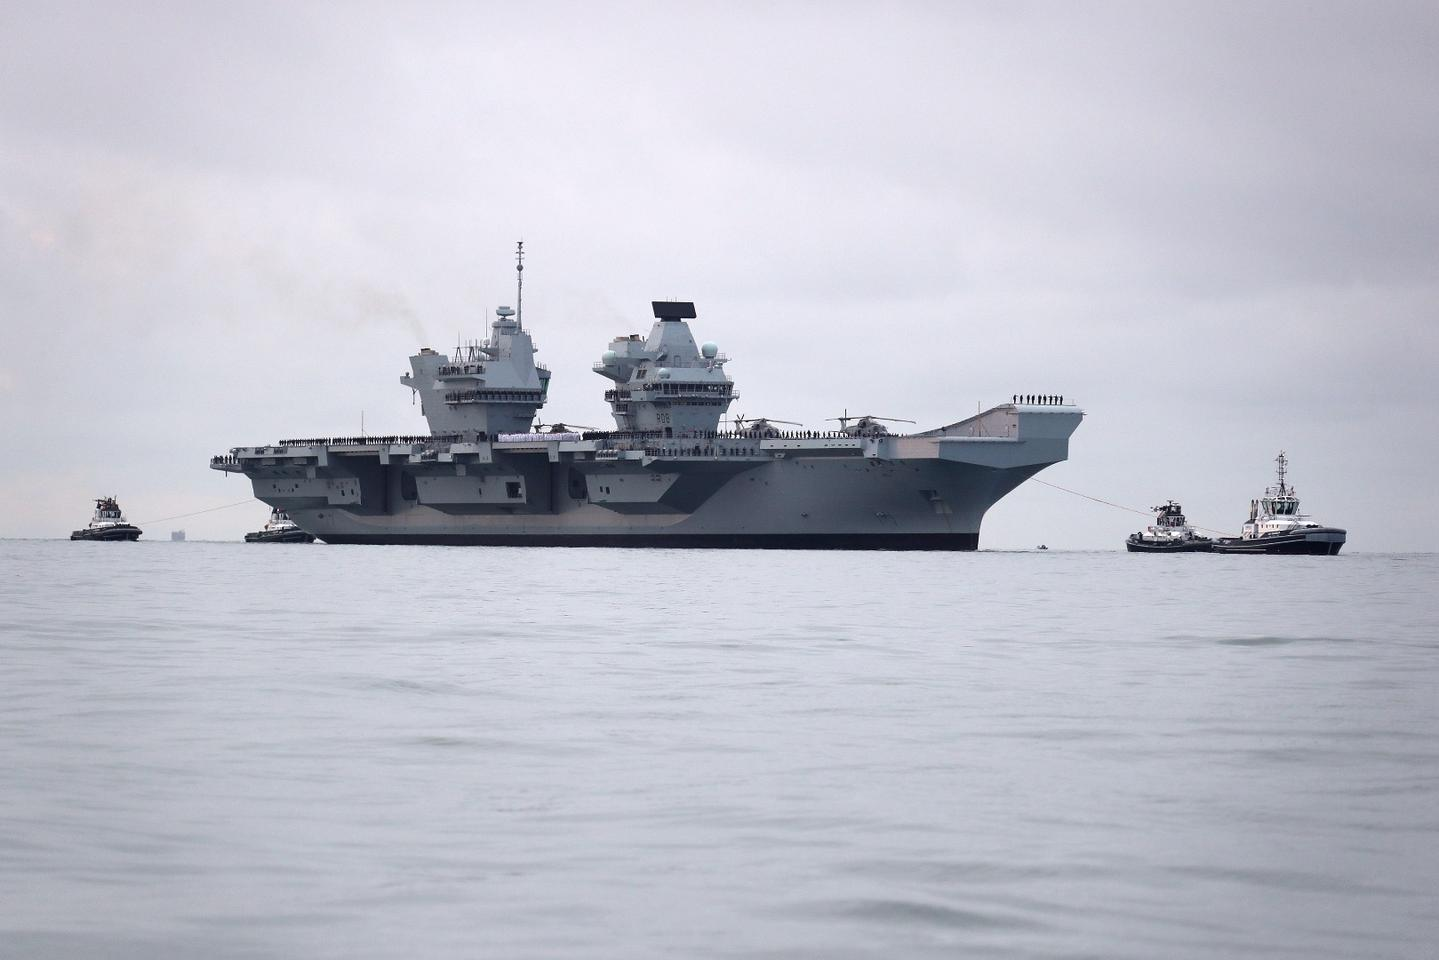 HMS Queen Elizabeth has been undergoing sea trials